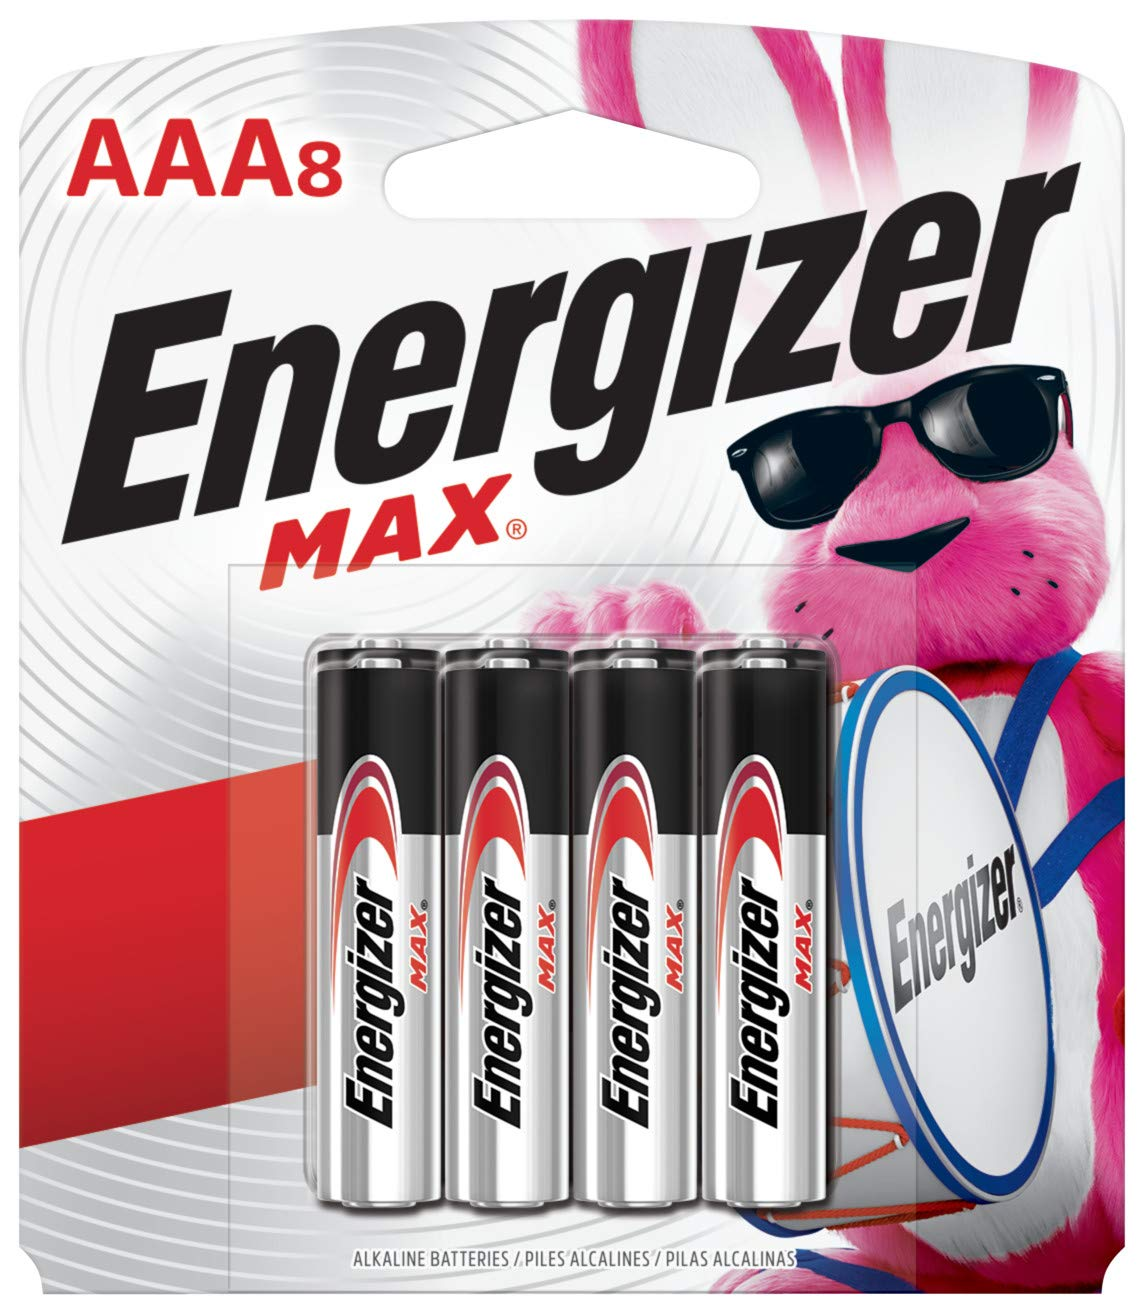 Triple Aaa Number >> Energizer Aaa Batteries 8 Count Triple A Max Alkaline Battery Packaging May Vary